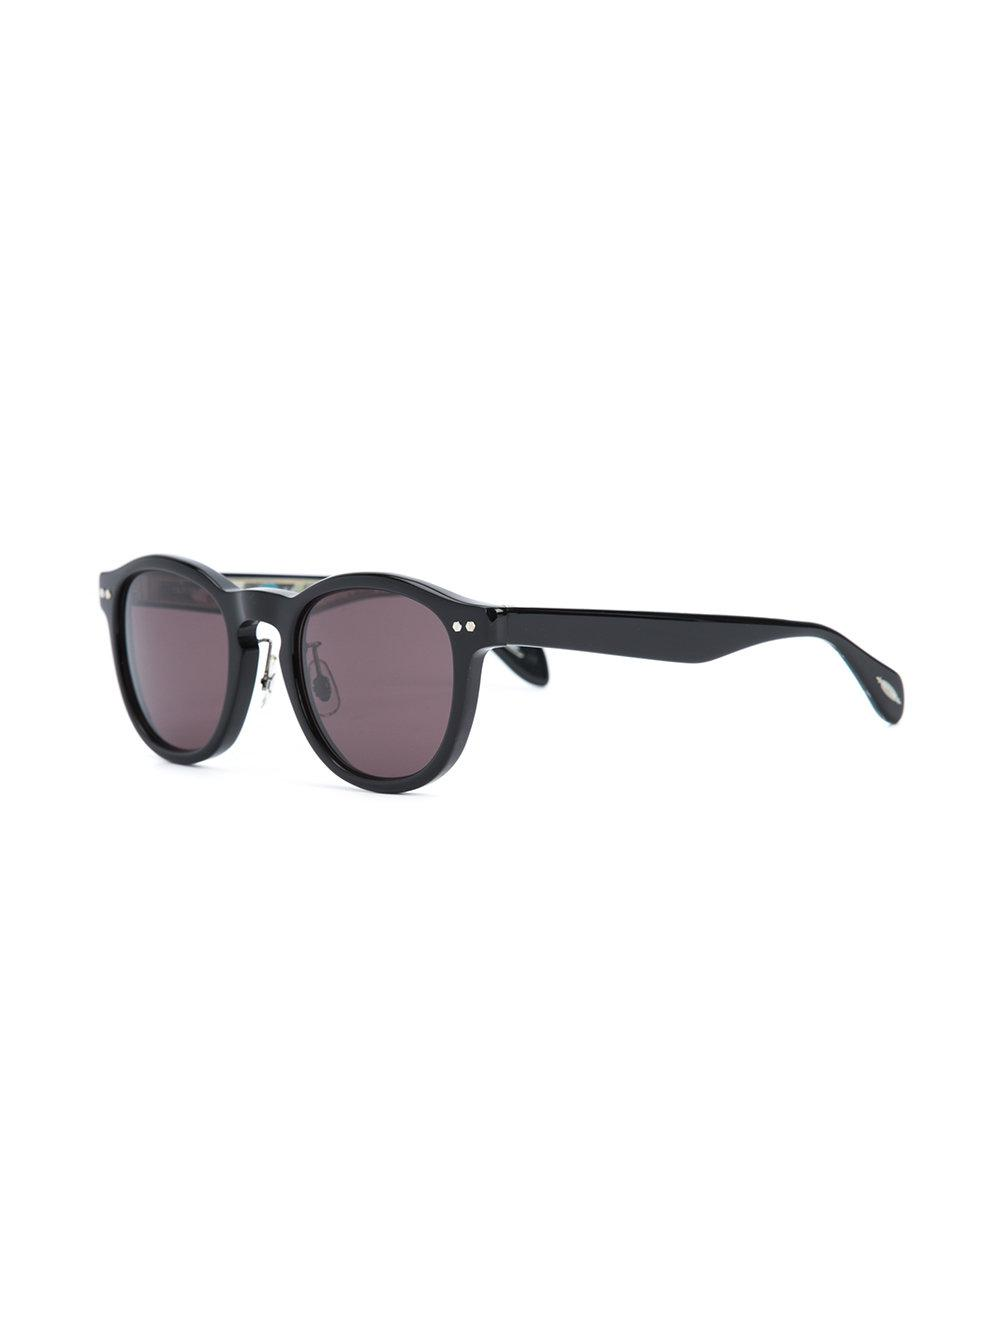 Oliver Peoples Round Shaped Sunglasses in Black